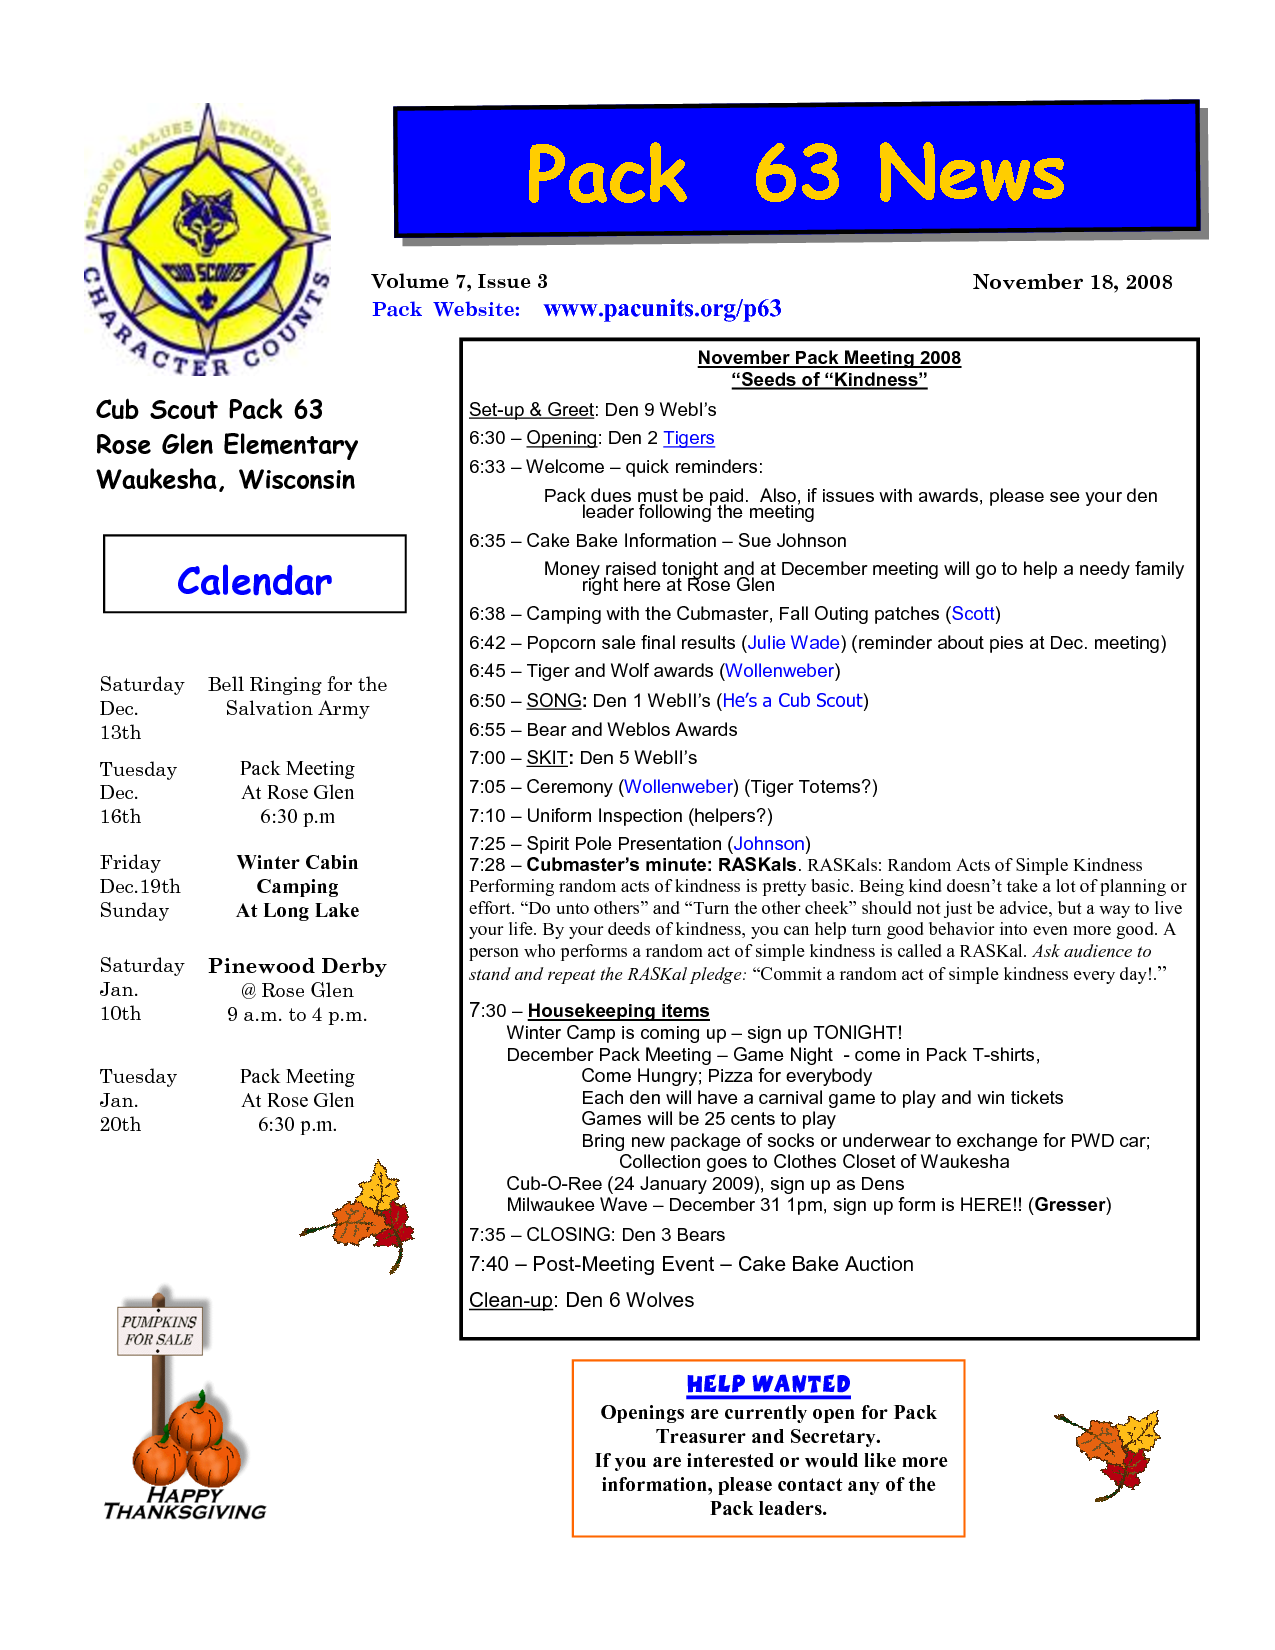 cub scout newsletter template Google Search   Scouts   Pinterest